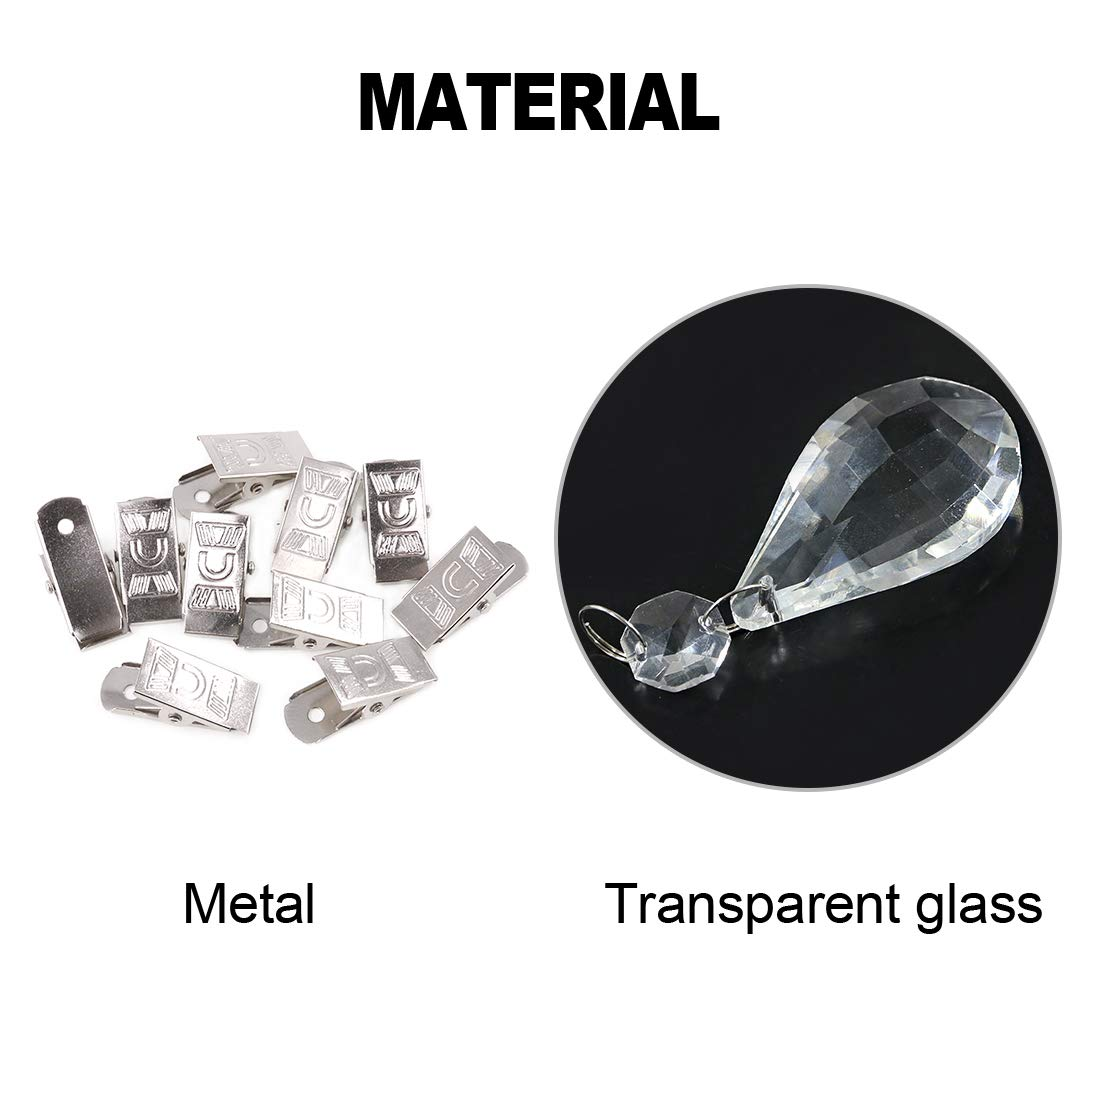 Glarks Tablecloth Weights Set Lute 10Pcs Metal Clip AB Crystal Glass Teardrop Prisms Pendant Tablecloth Weights for Picnic Tables Tablecloth Weights Heavy Outdoor